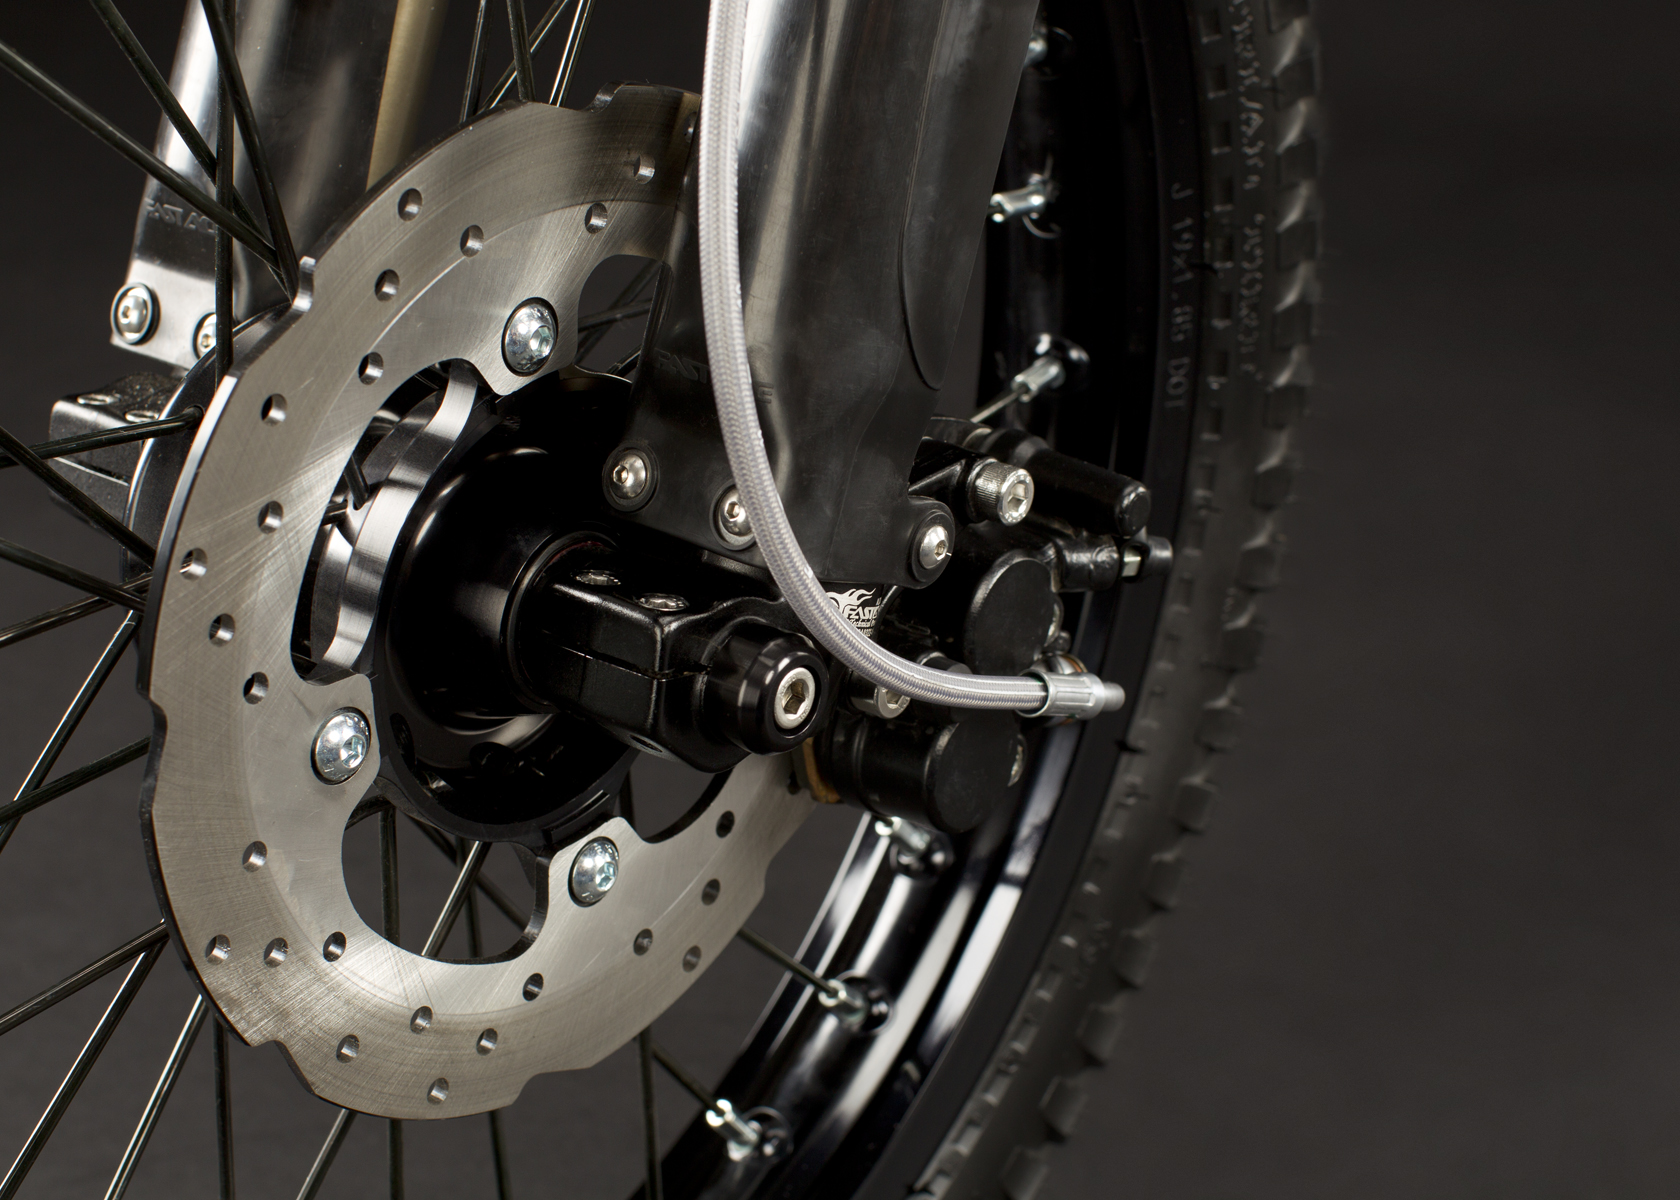 2011 Zero X Electric Motorcycle: Front Brake